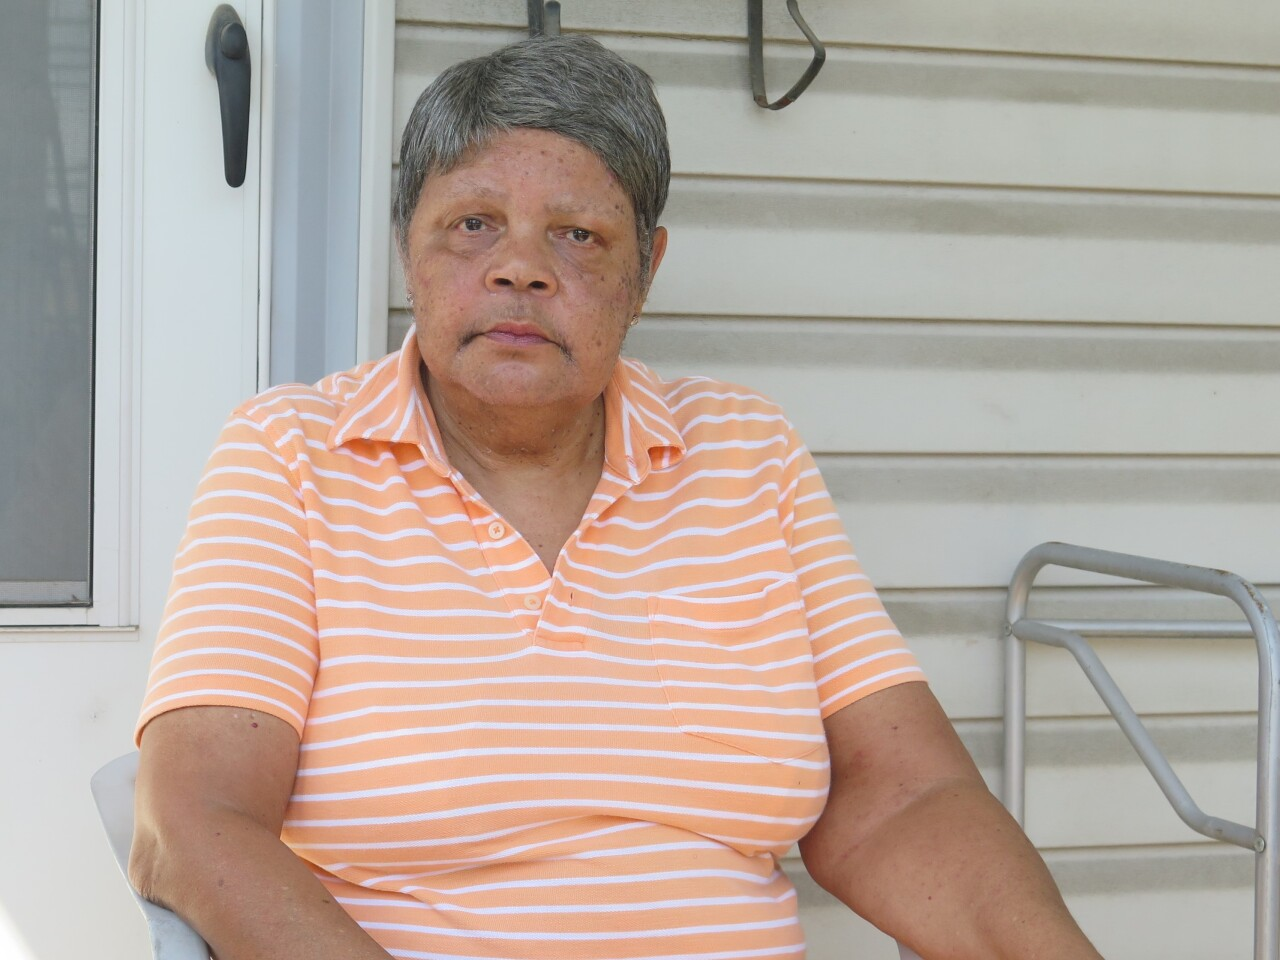 Pat Herndon poses on the porch of her Covington home. She is wearing a pale orange top with white stripes and has short grey hair.